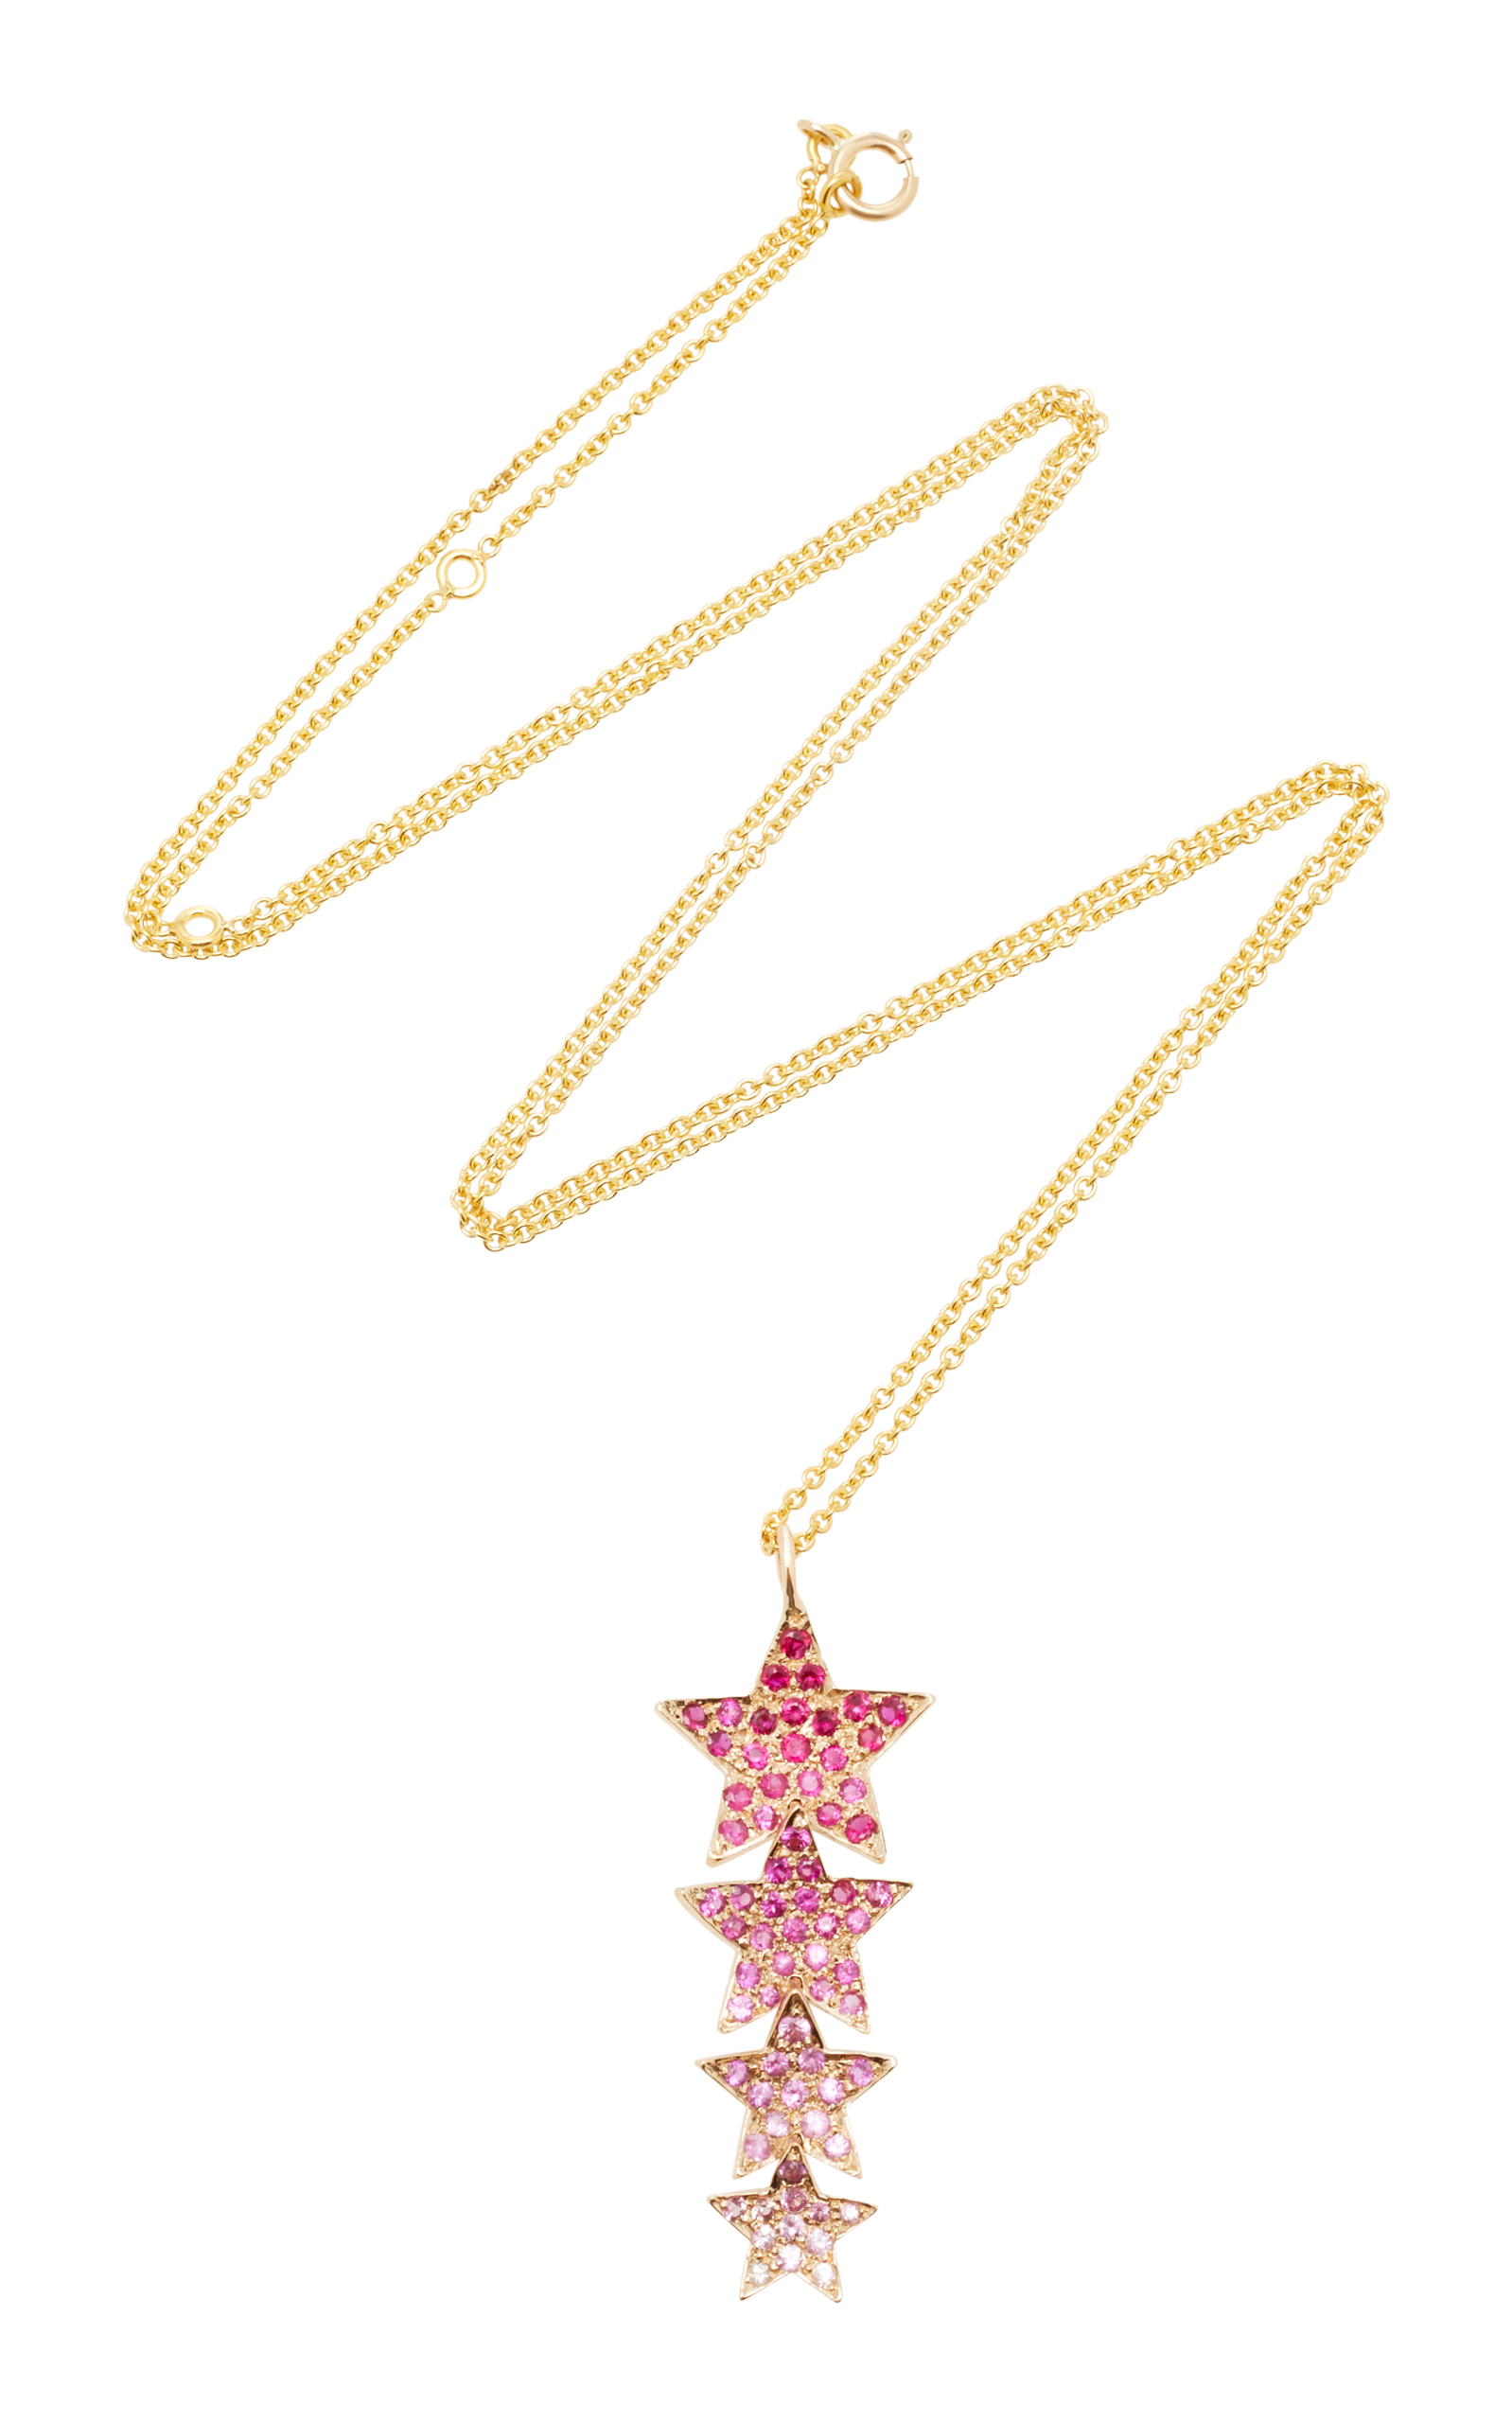 SHE BEE 14K YELLOW GOLD AND SAPPHIRE STAR DROP PENDANT